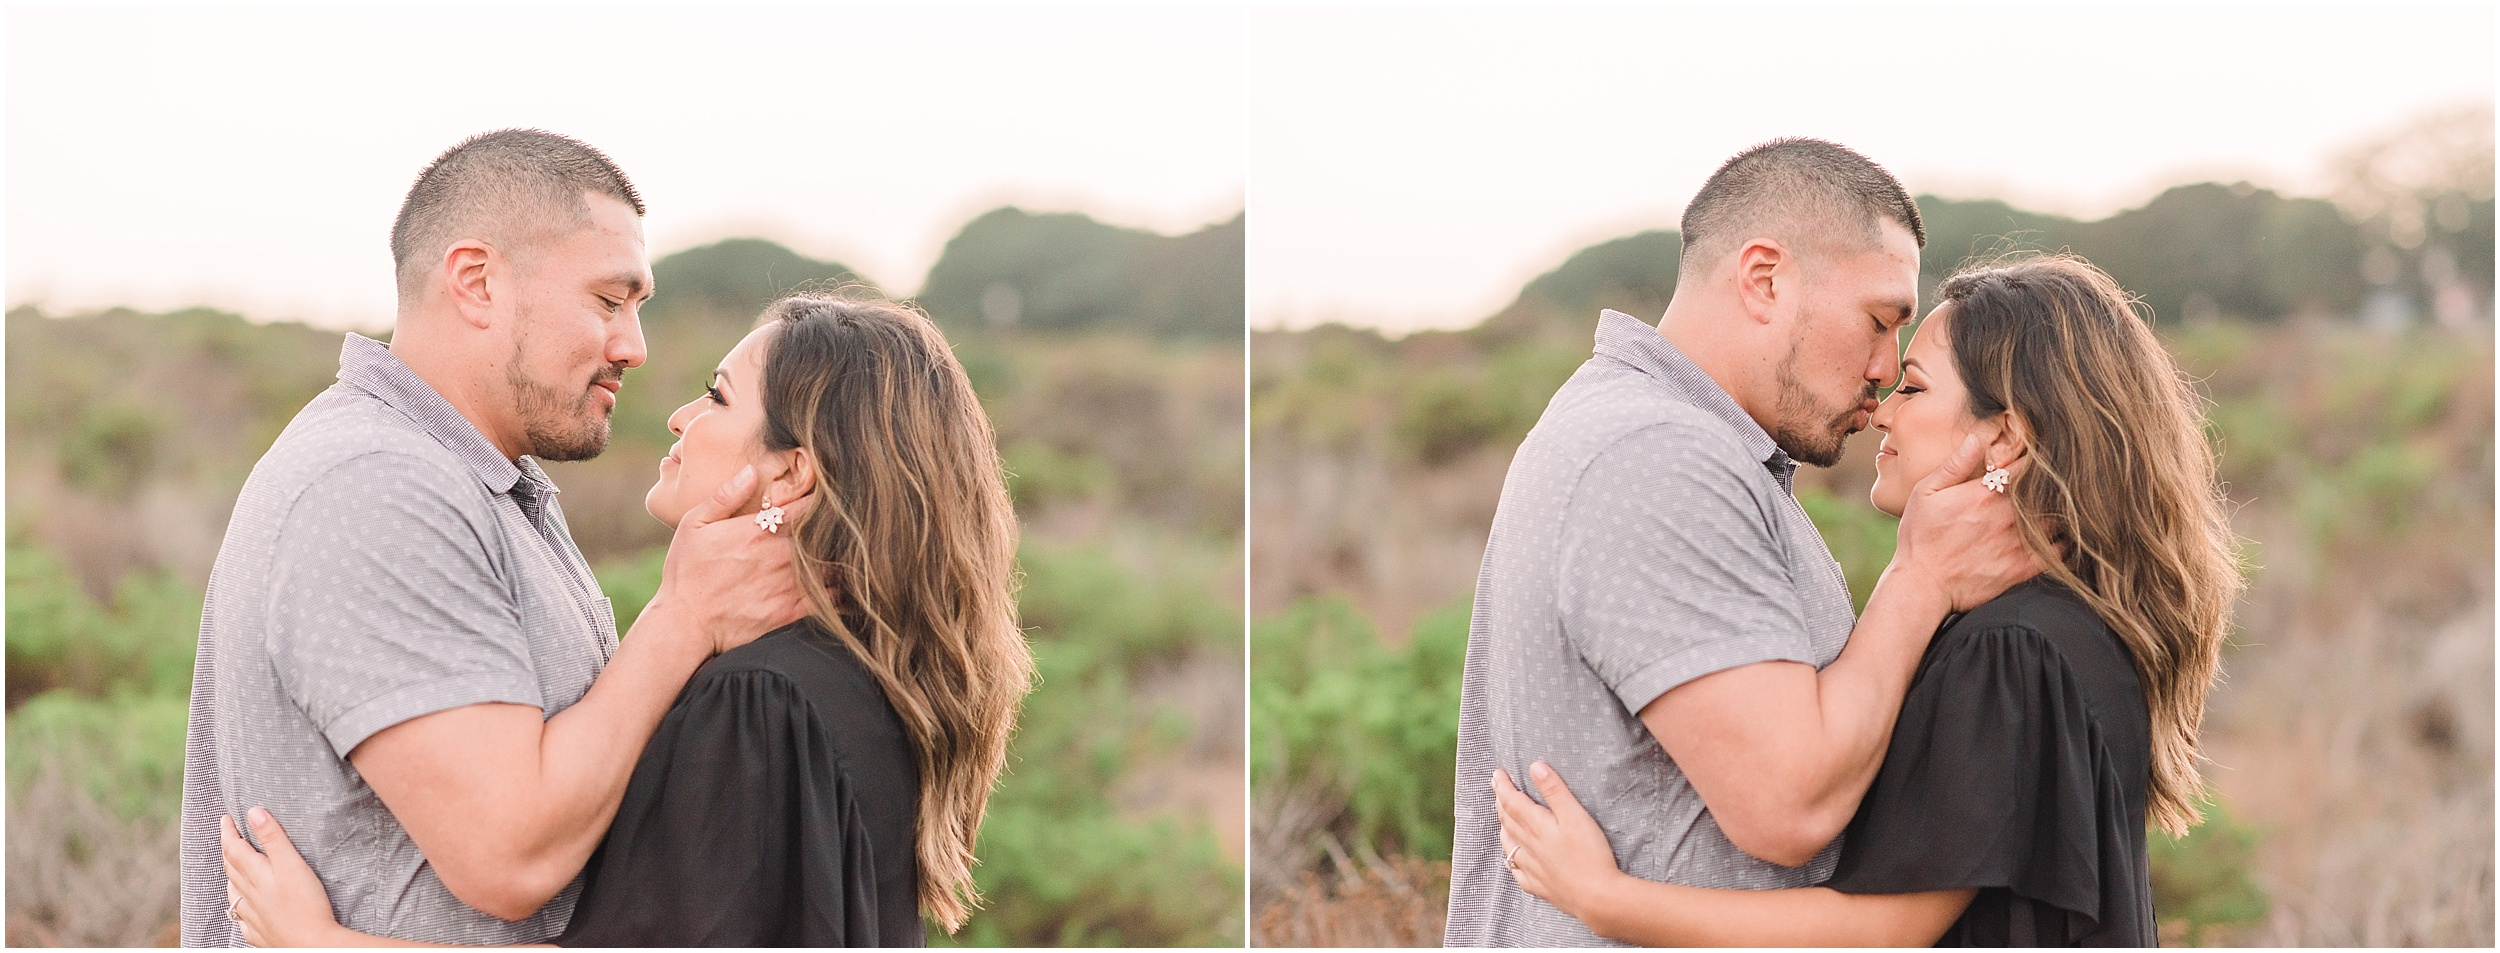 Engagement-Session-in-Malibu-California-Valeria-Gonzalez-Photography-Wedding-and-Portrait-Photographer-Richmond-Virginia-Ventura-California_0020.jpg